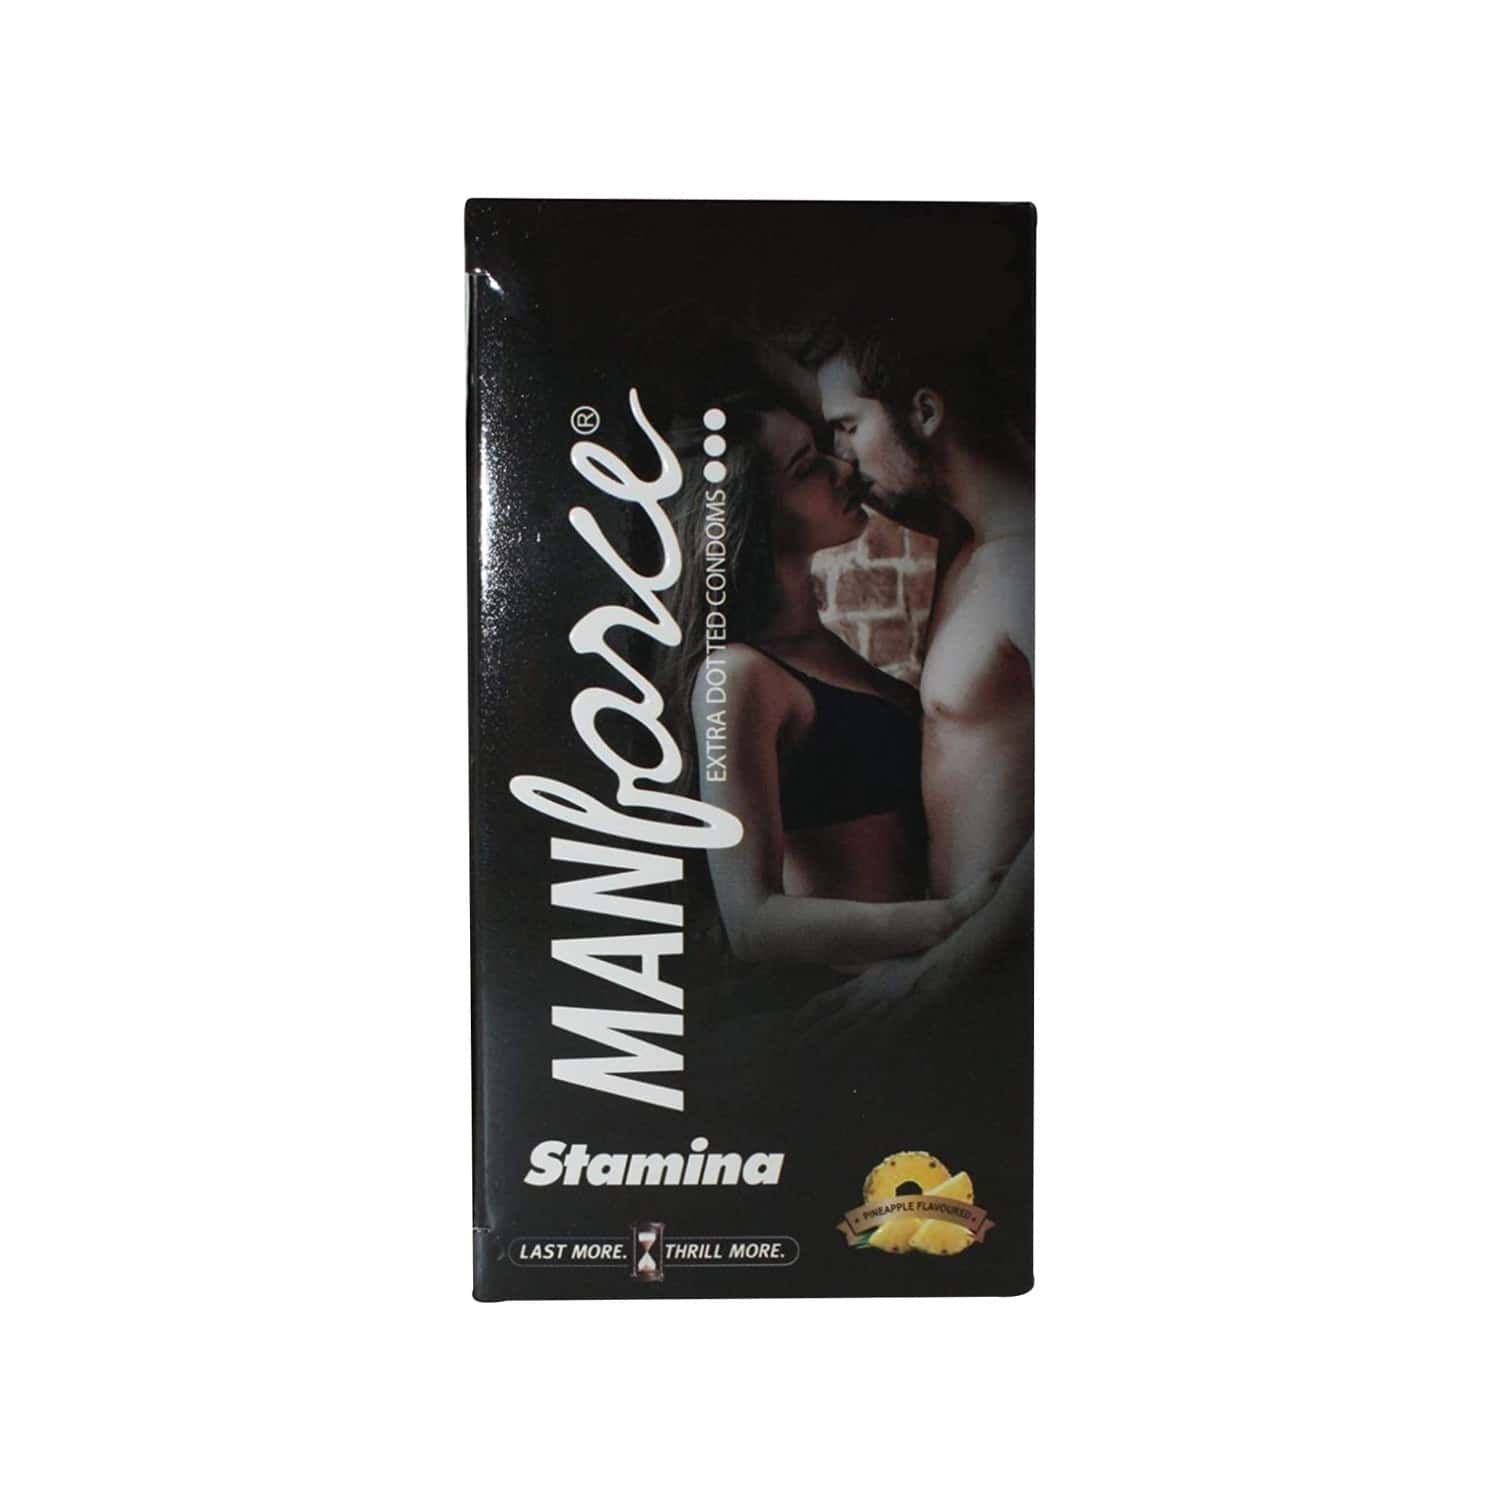 Manforce Extra Dotted Pineapple Flavour Condom 20's